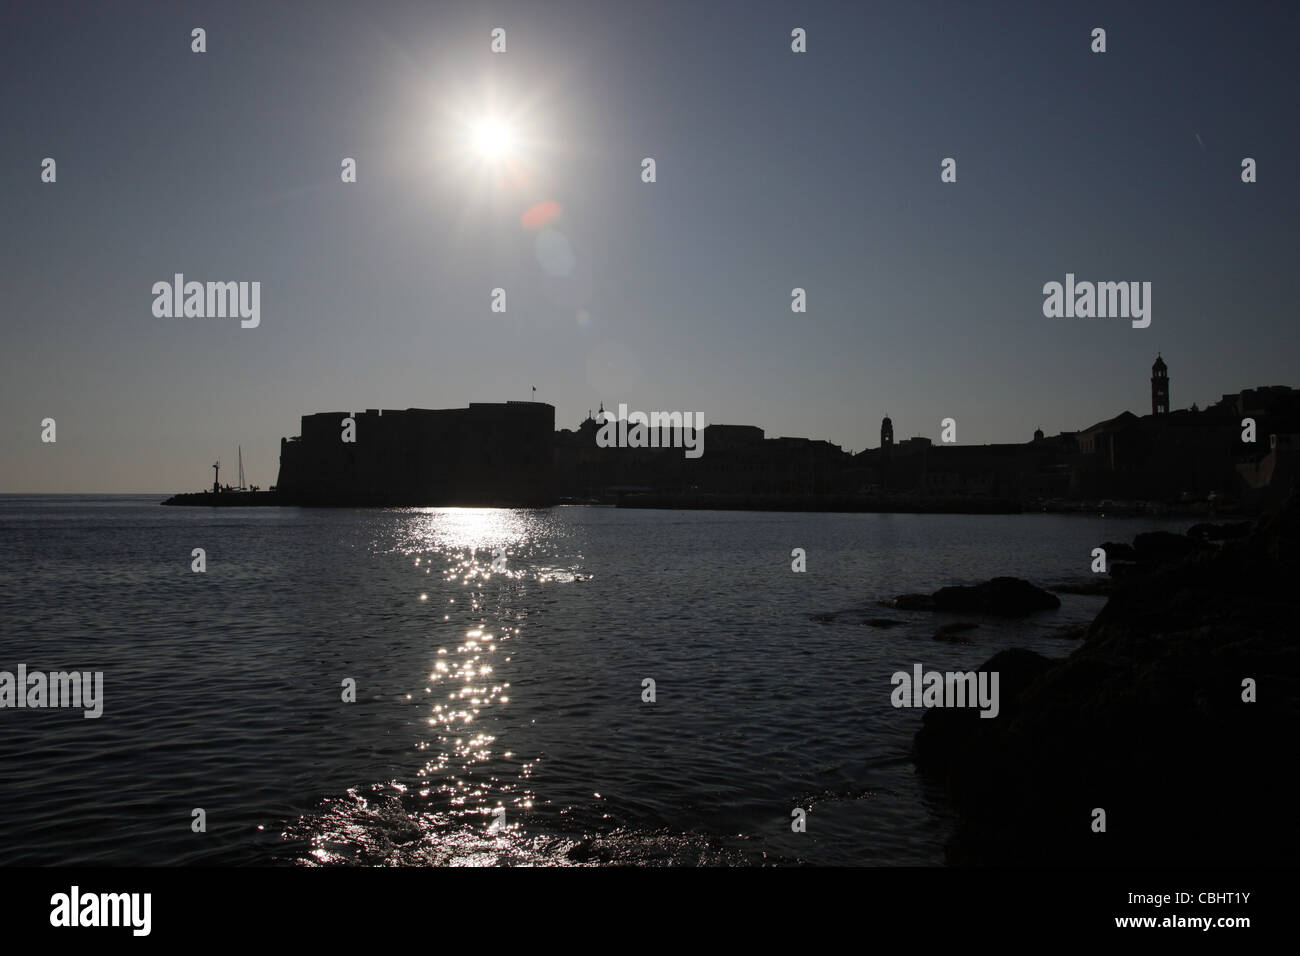 SUN SHINES OVER OLD PORT & HARBOUR OLD TOWN DUBROVNIK CROATIA 05 October 2011 - Stock Image